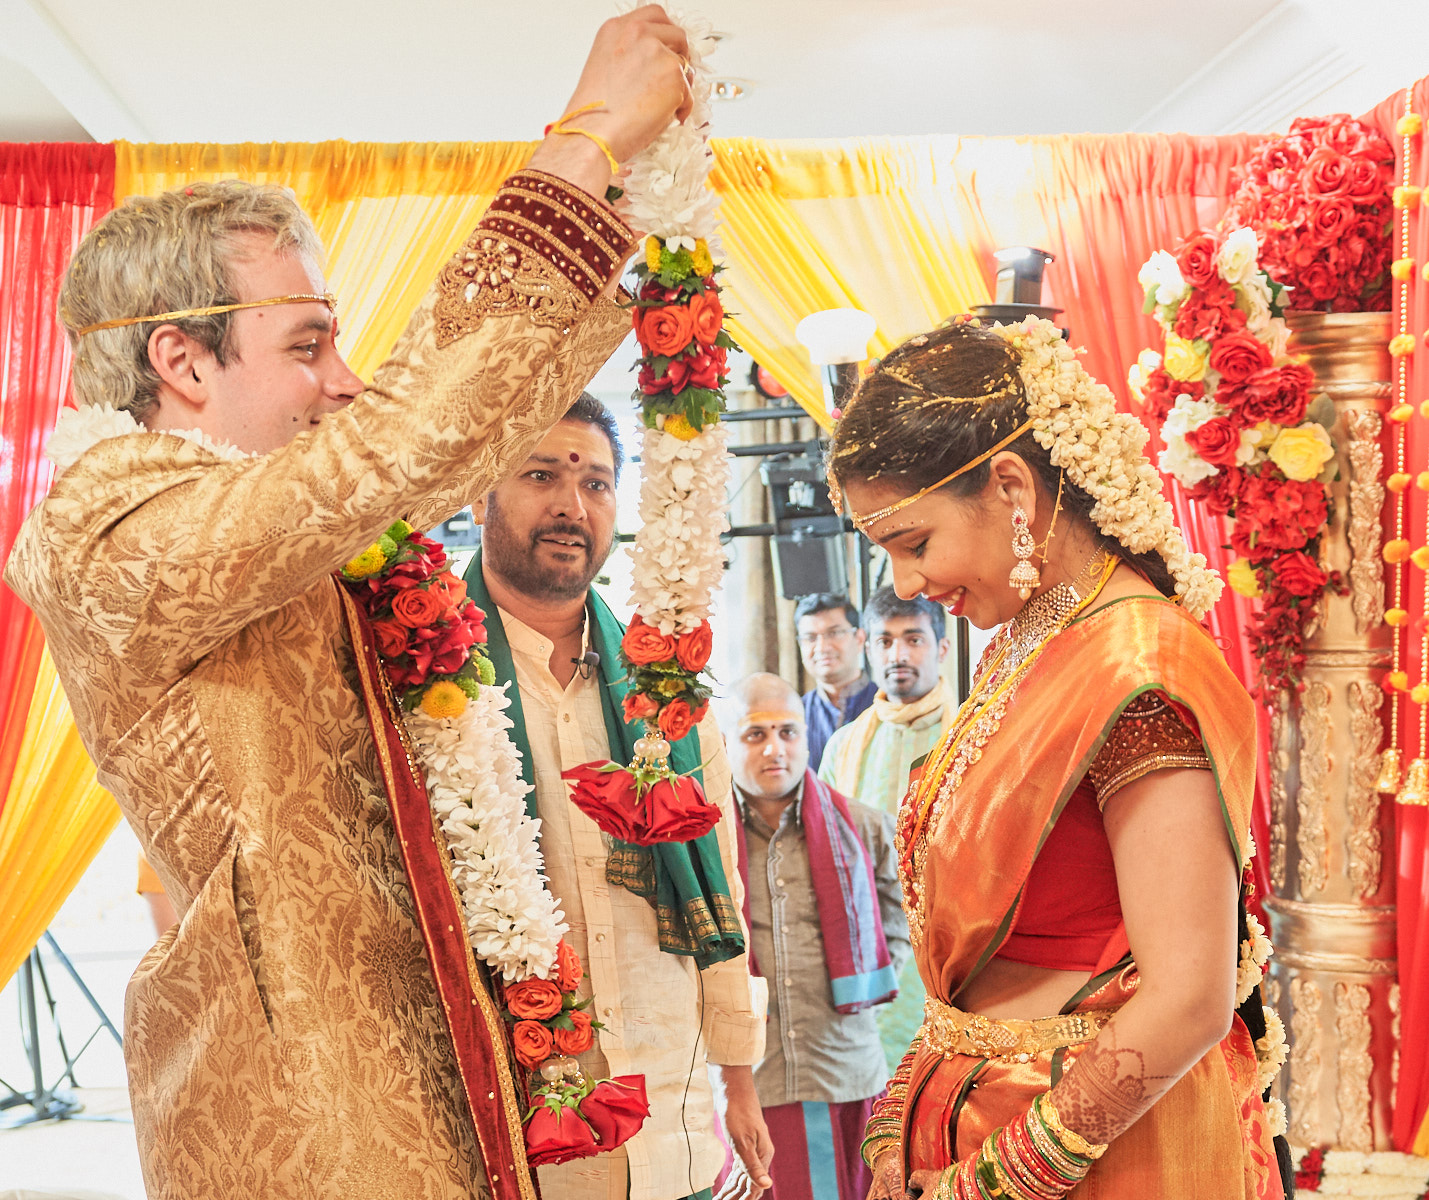 Mixed race couple exchanging garlands - at least this is common with north Indian style wedding.